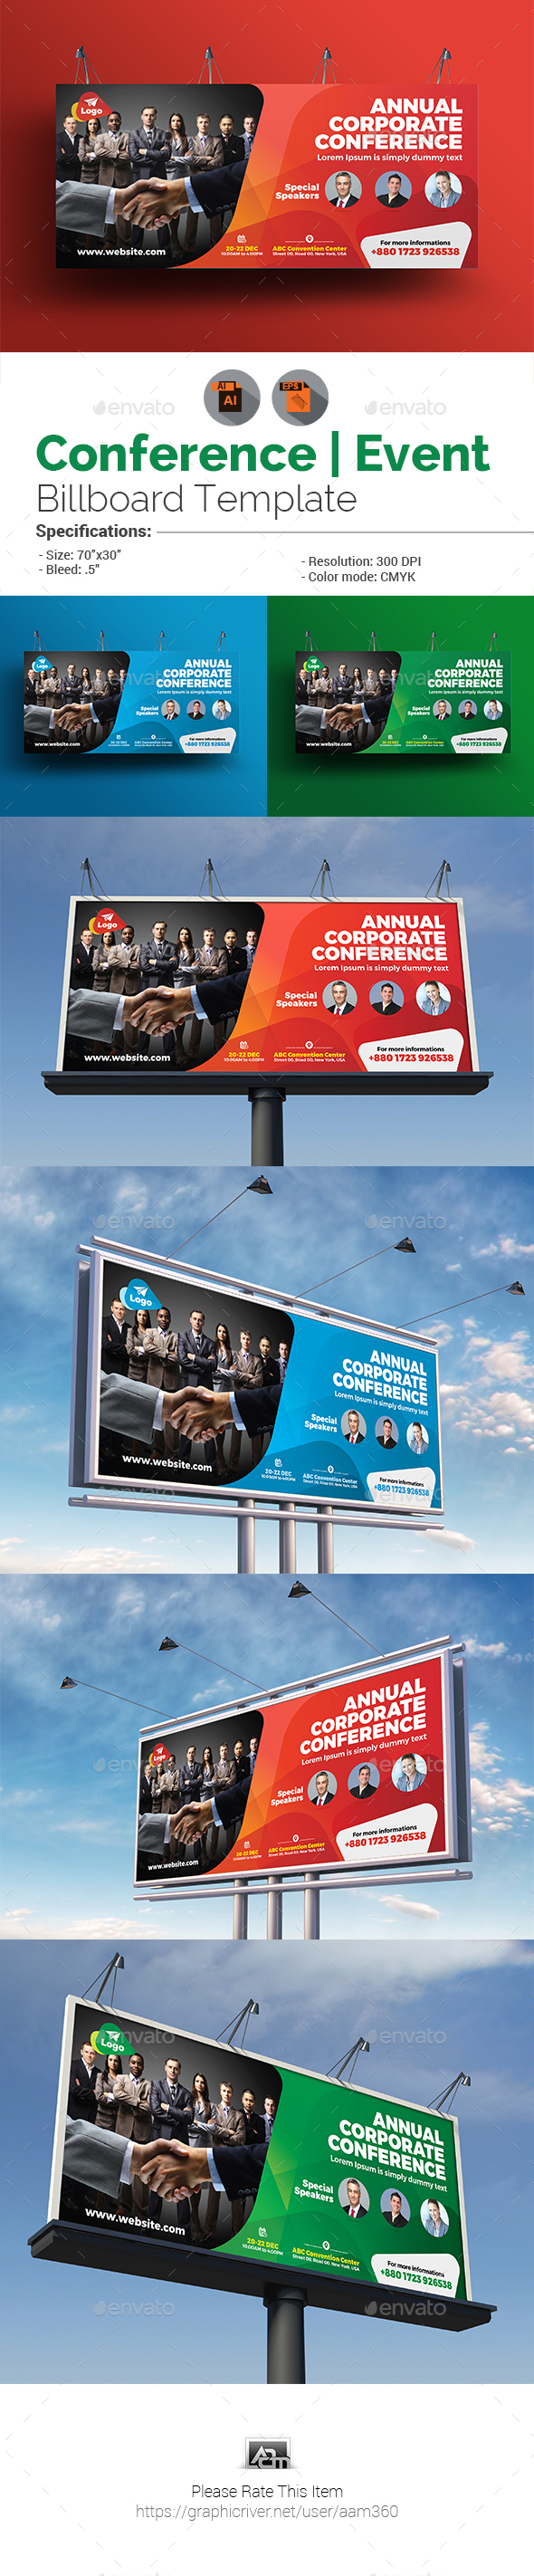 Event Summit Conference Billboard Template - Signage Print Templates